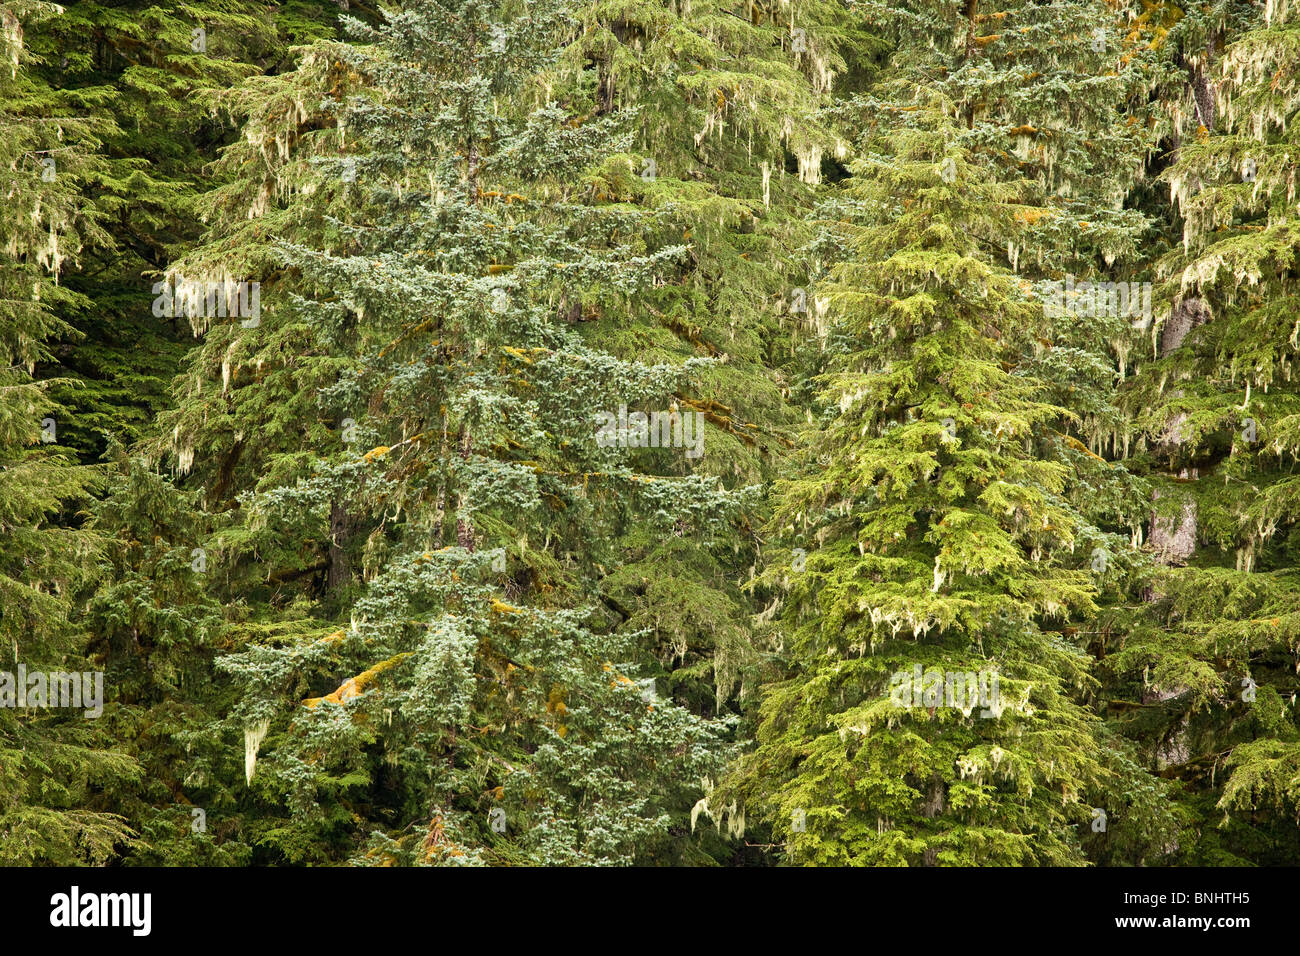 USA; Alaska; Pack Creek; Forest; conifer forest - Stock Image